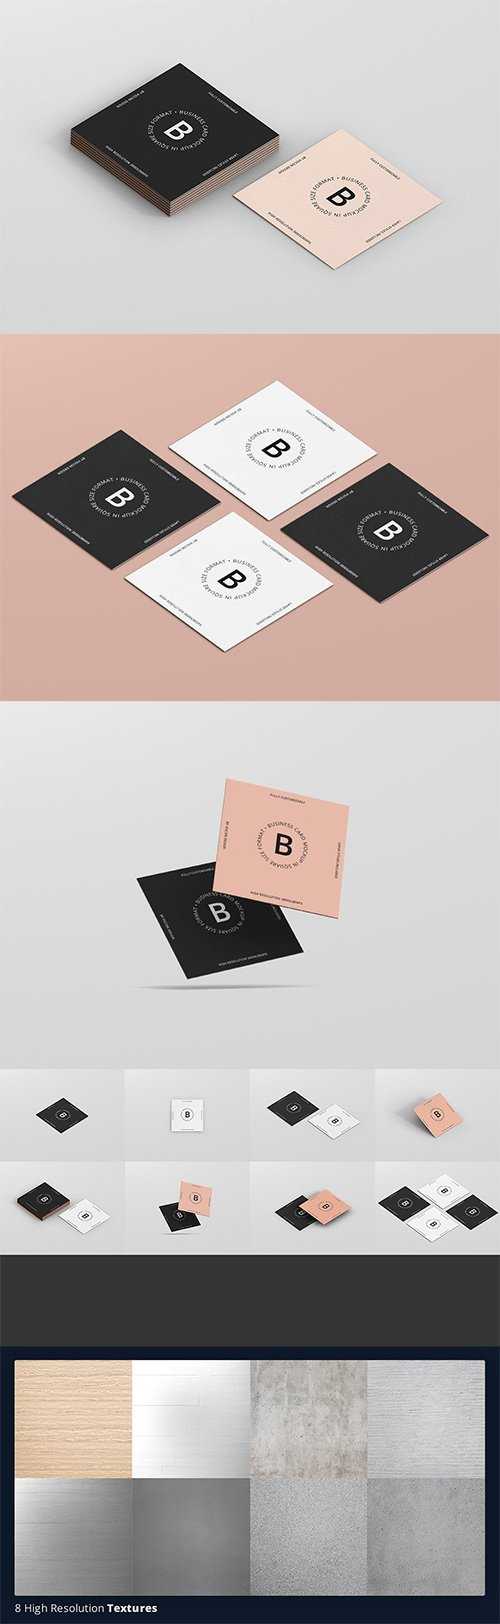 Business Card Mockup Square Format PSD